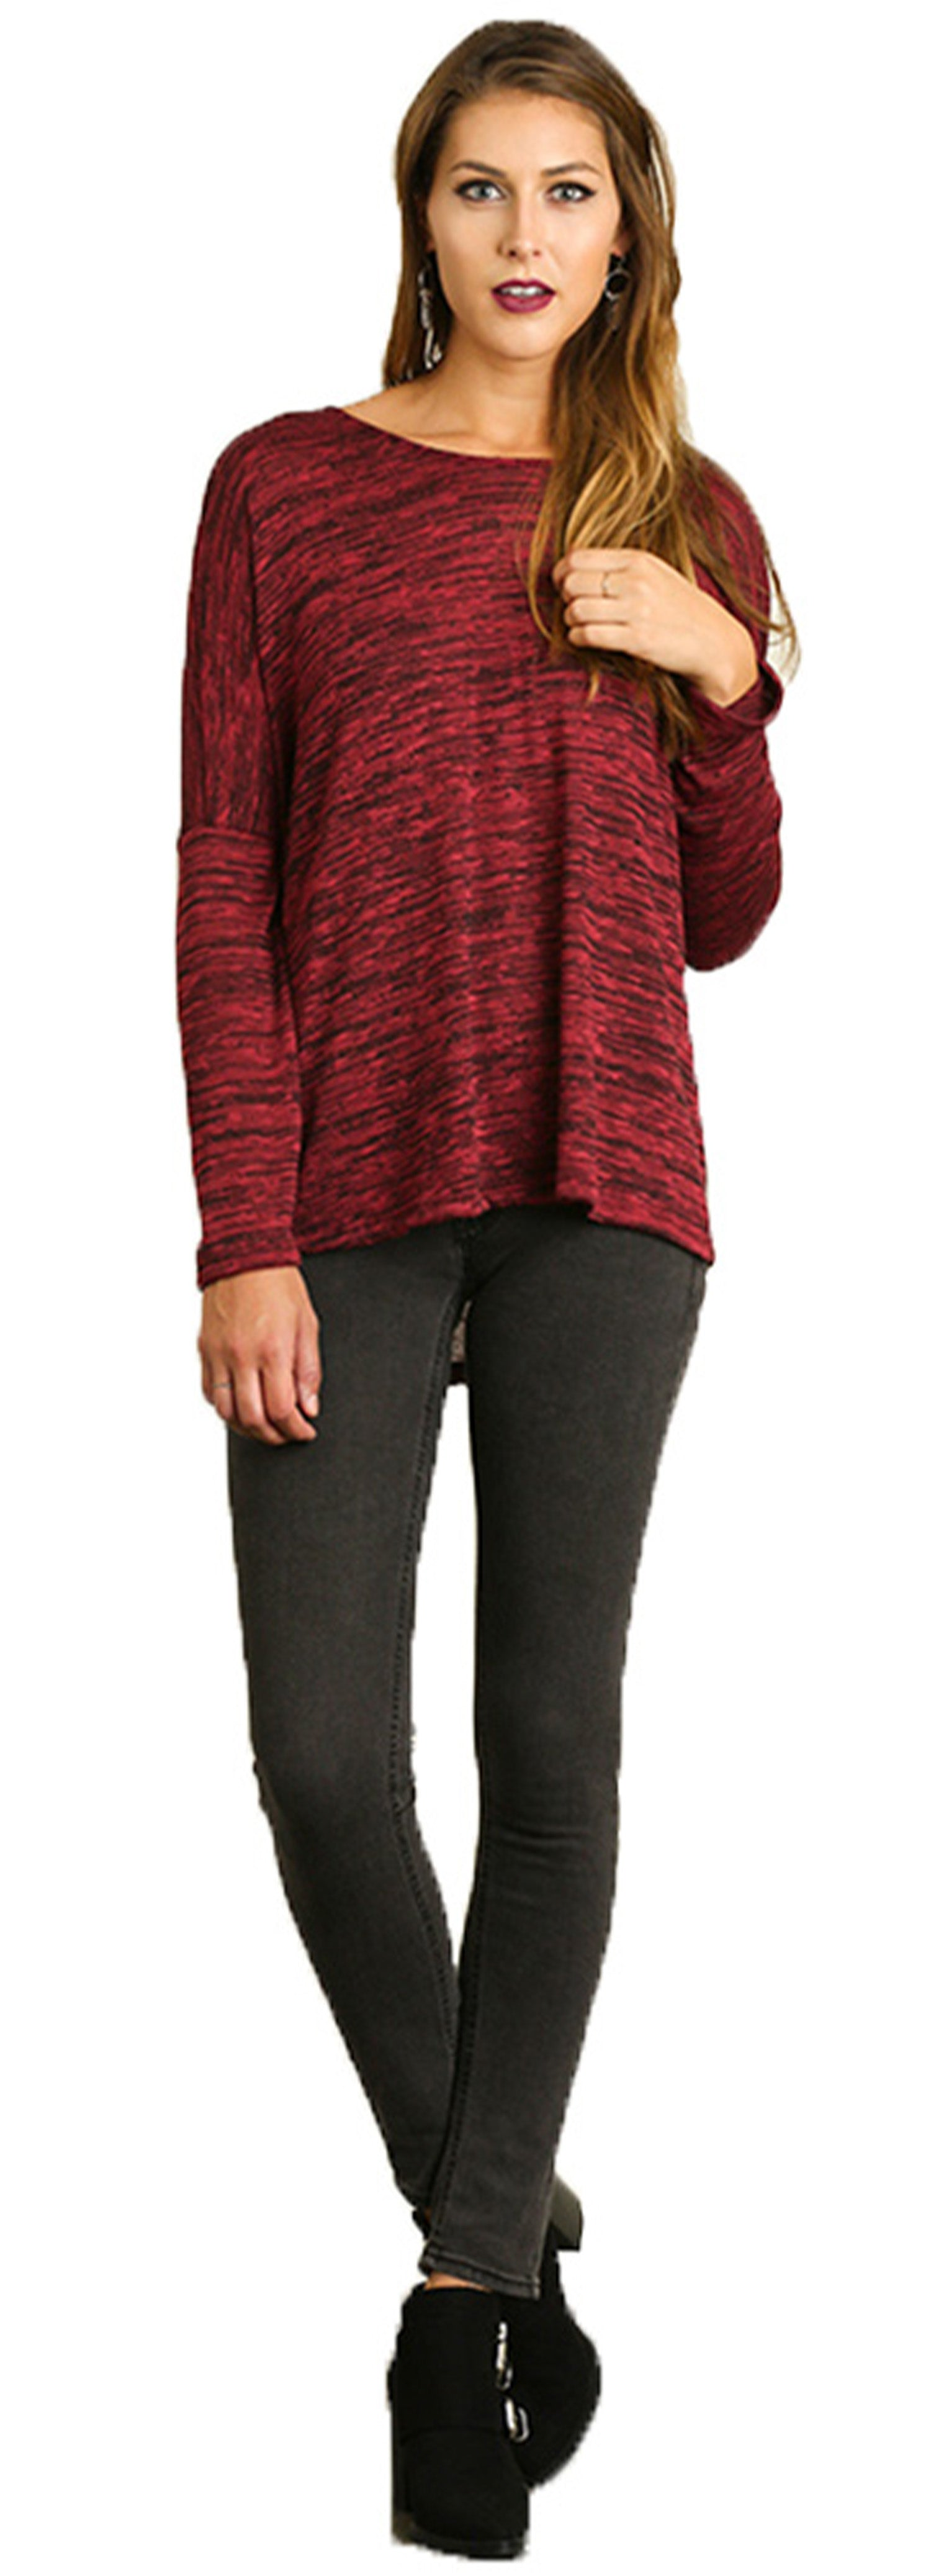 Ruby Marled Oversize dolman sleeve Top with High-low hem